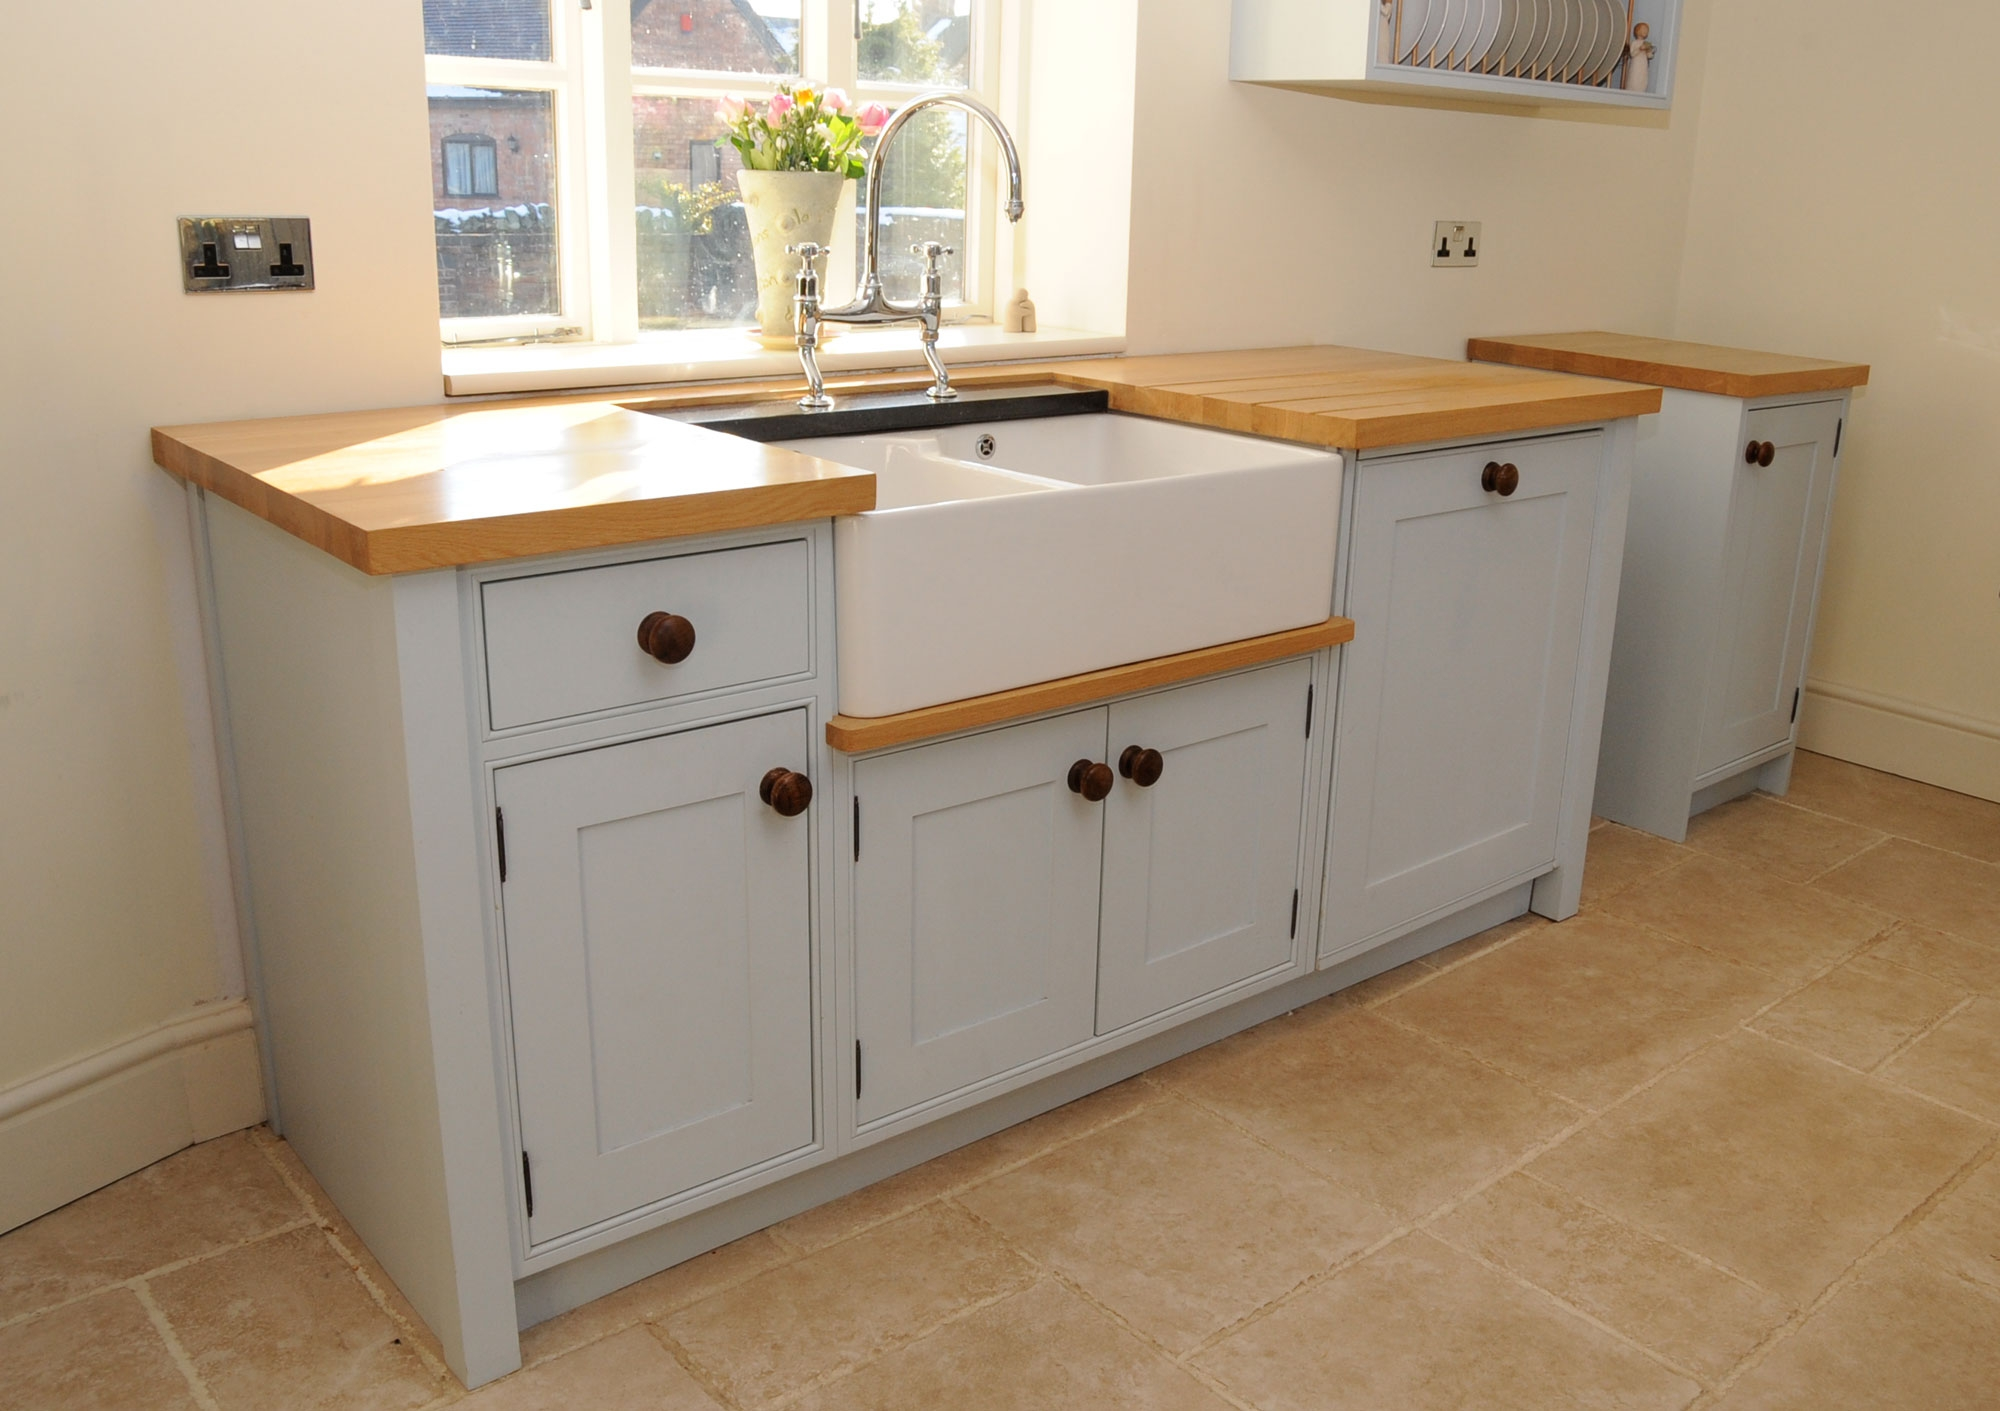 Kitchen Sinks With Cupboards Home Decor And Interior Design Intended For Free Cupboards (Image 13 of 15)